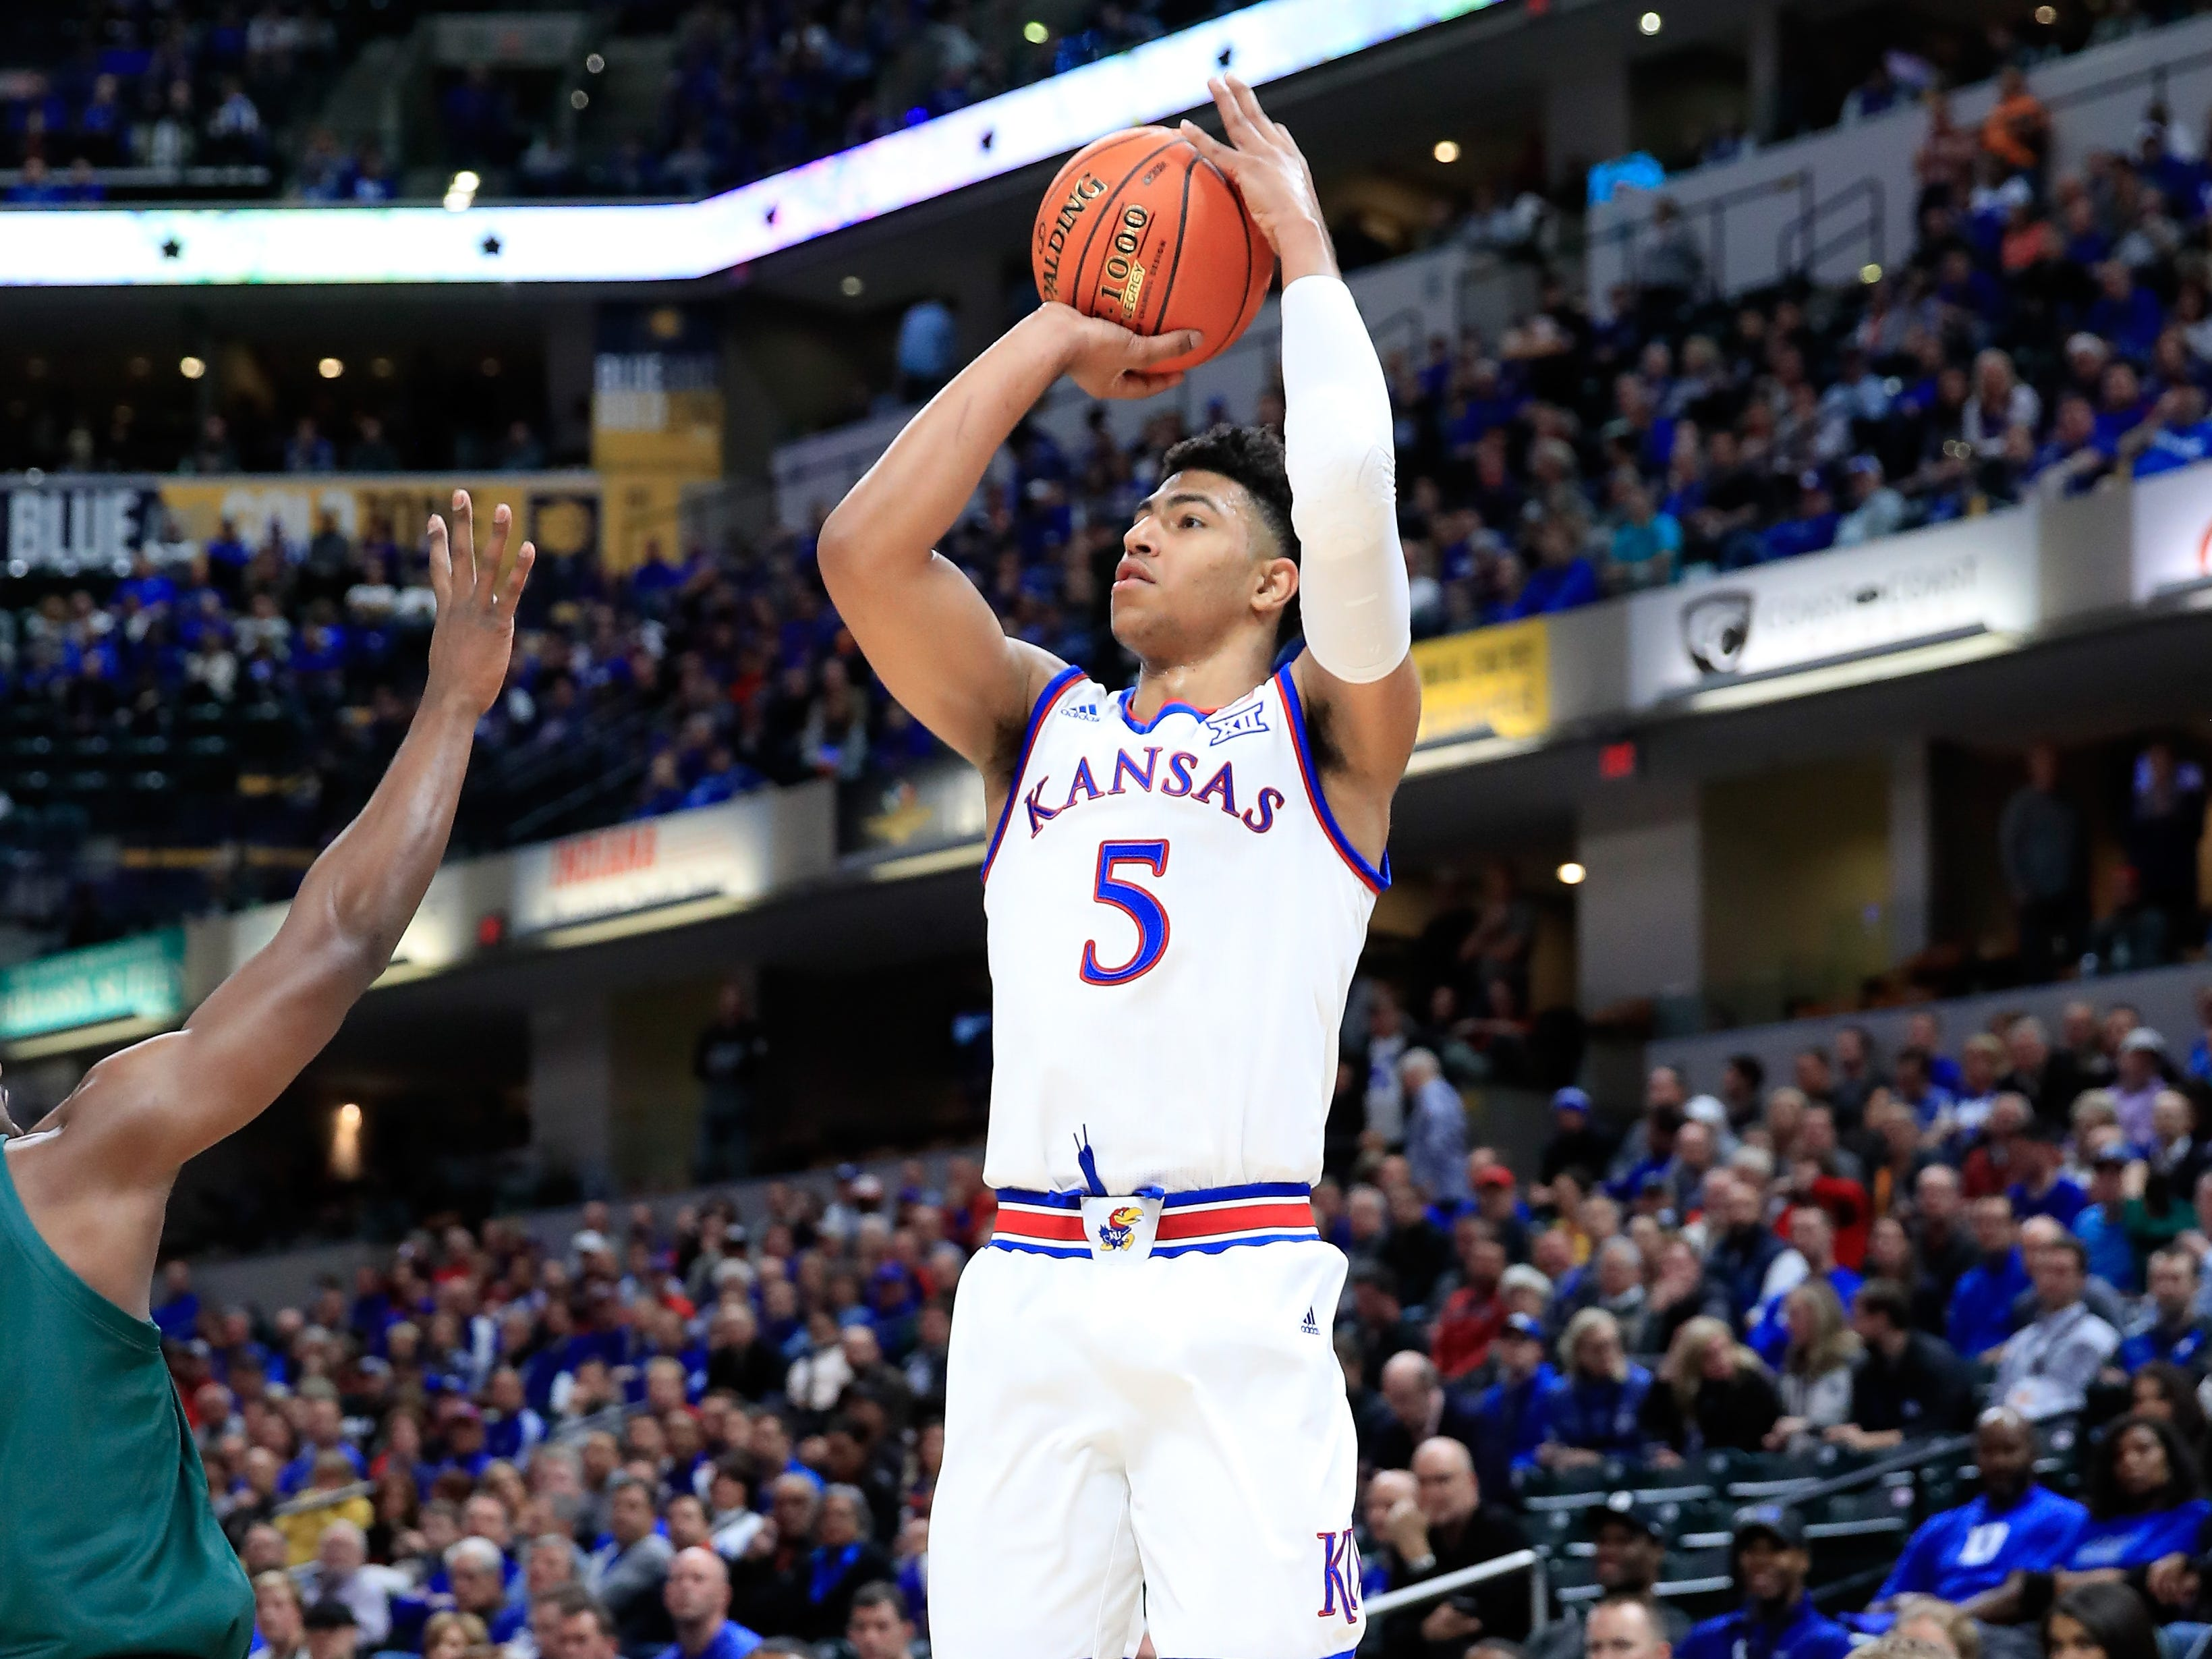 Quentin Grimes #5 of the Kansas Jayhawks shoots the ball against the Michigan State Spartans during the State Farm Champions Classic at Bankers Life Fieldhouse on November 6, 2018 in Indianapolis, Indiana.